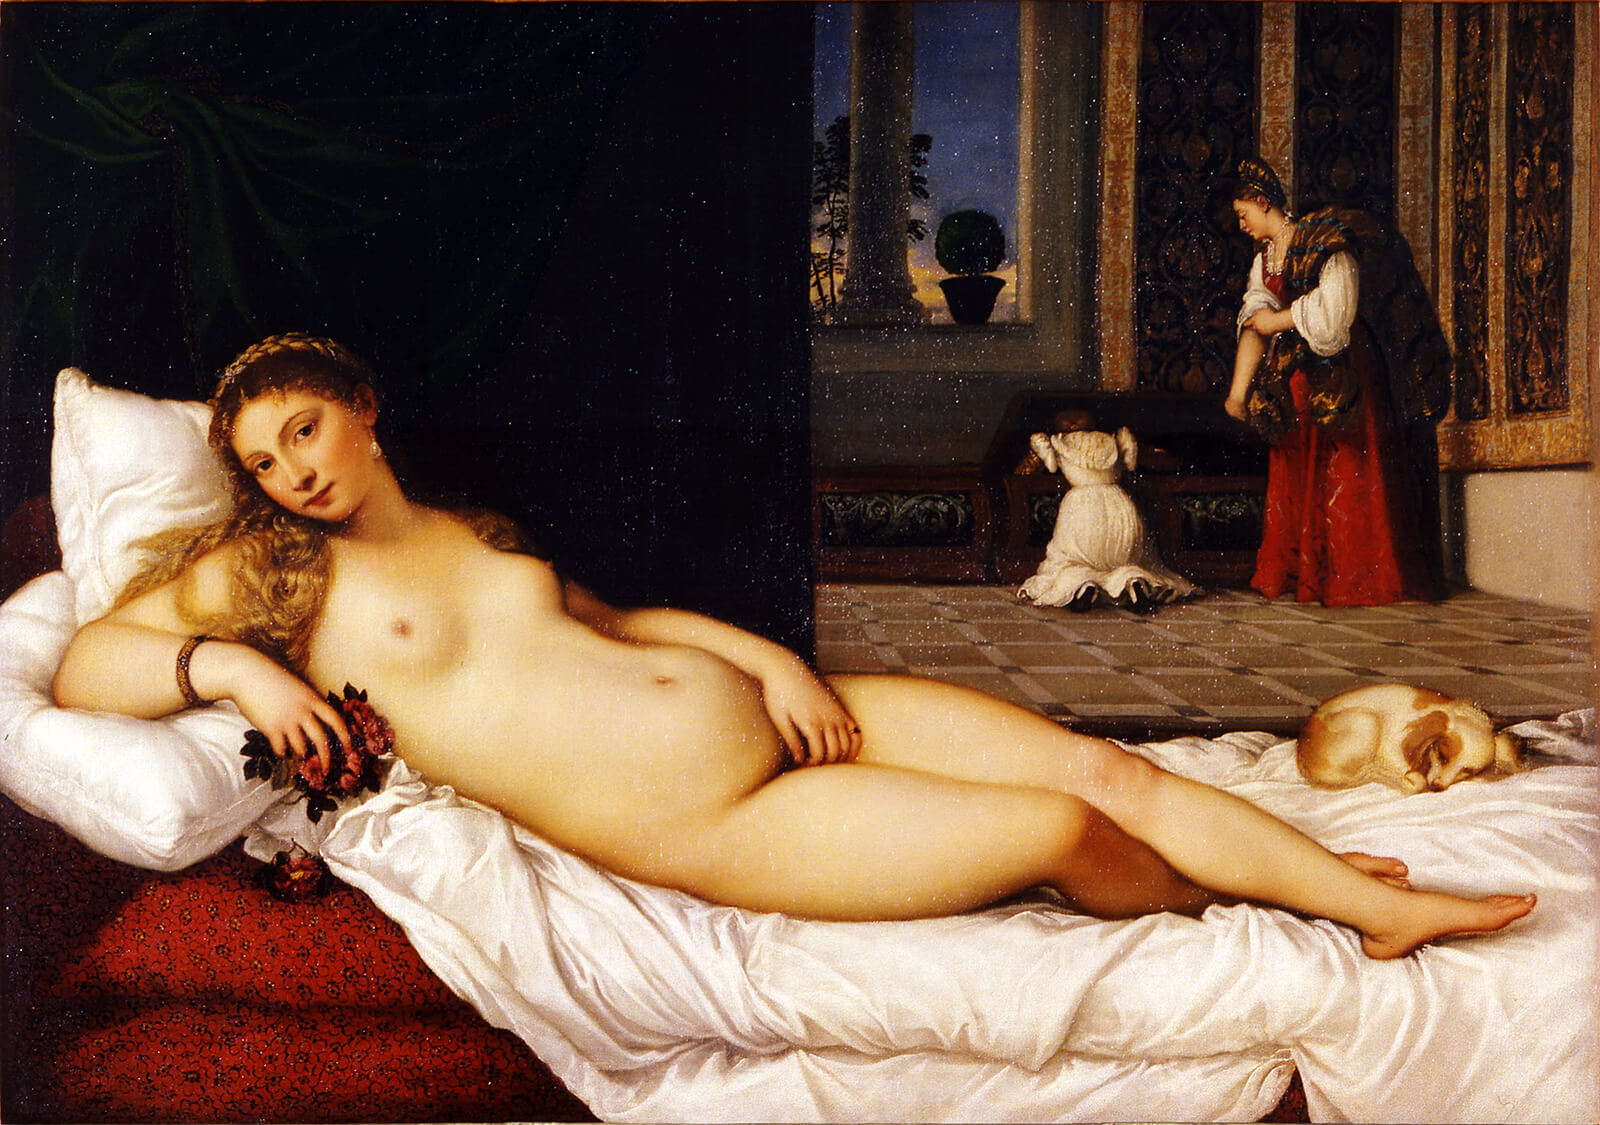 A nude Venus lounges on pillows, beside a sleeping dog, with two women in the background.